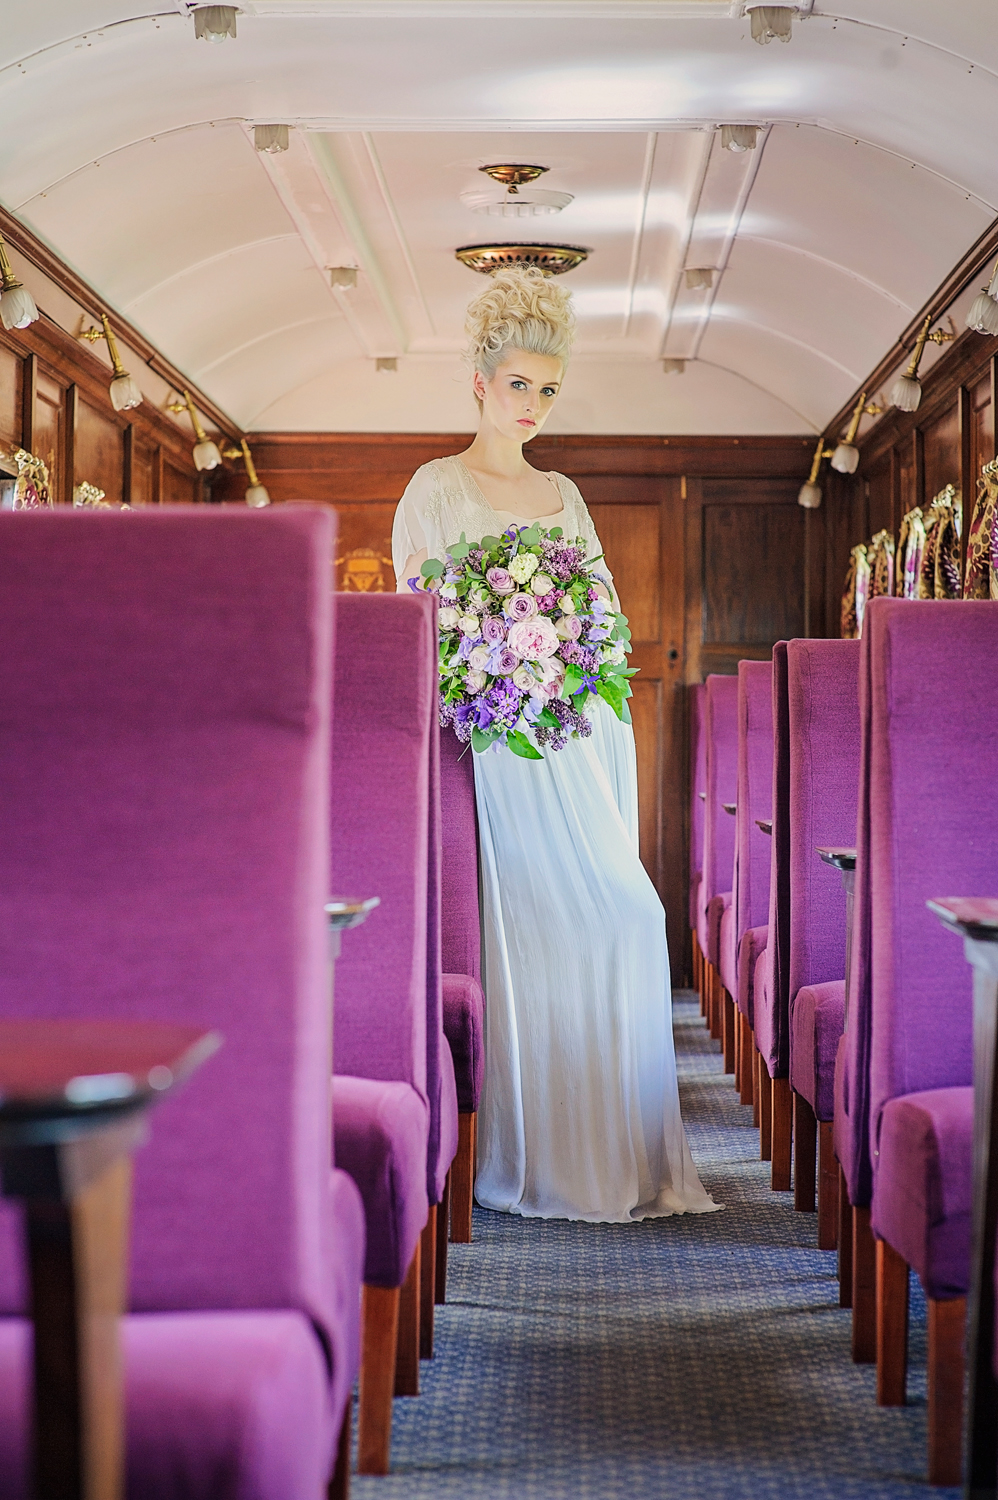 amber-tutton-model-pengelly-photography-colne-valley-railway-railway-bridal-shoot-11